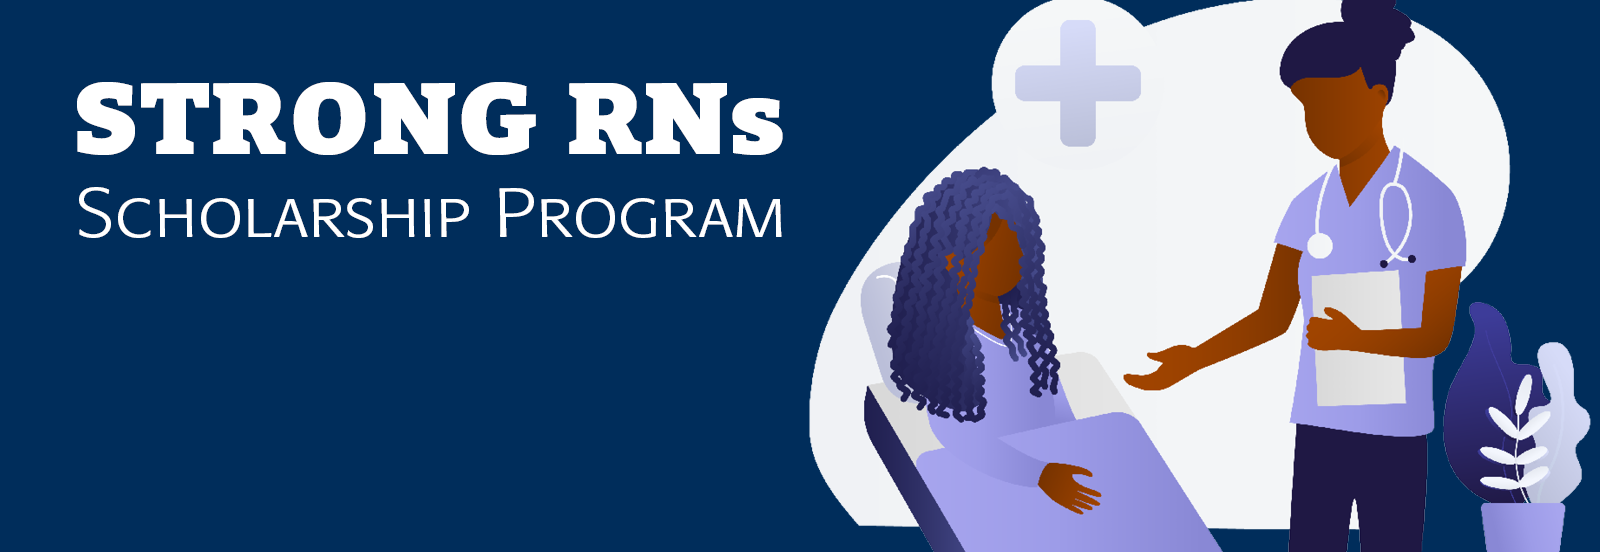 Strong RNs scholarship program with graphic